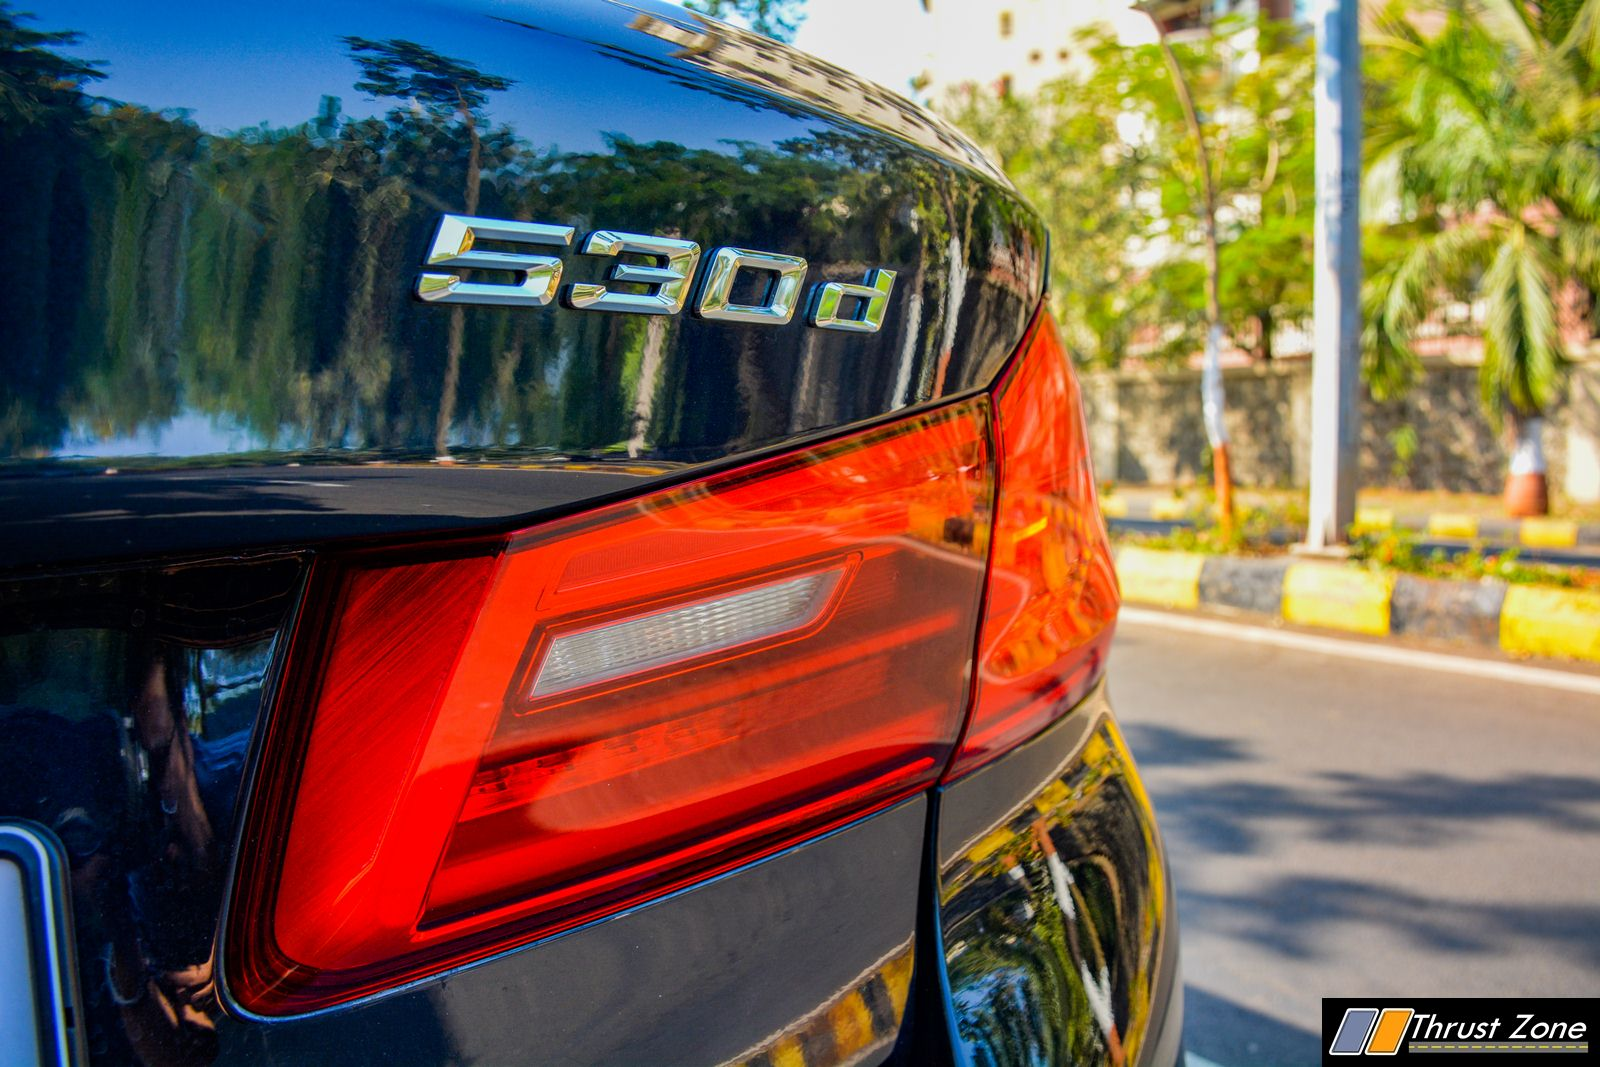 http://www.thrustzone.com/wp-content/uploads/2019/01/2018-BMW-530d-India-Review-14.jpg